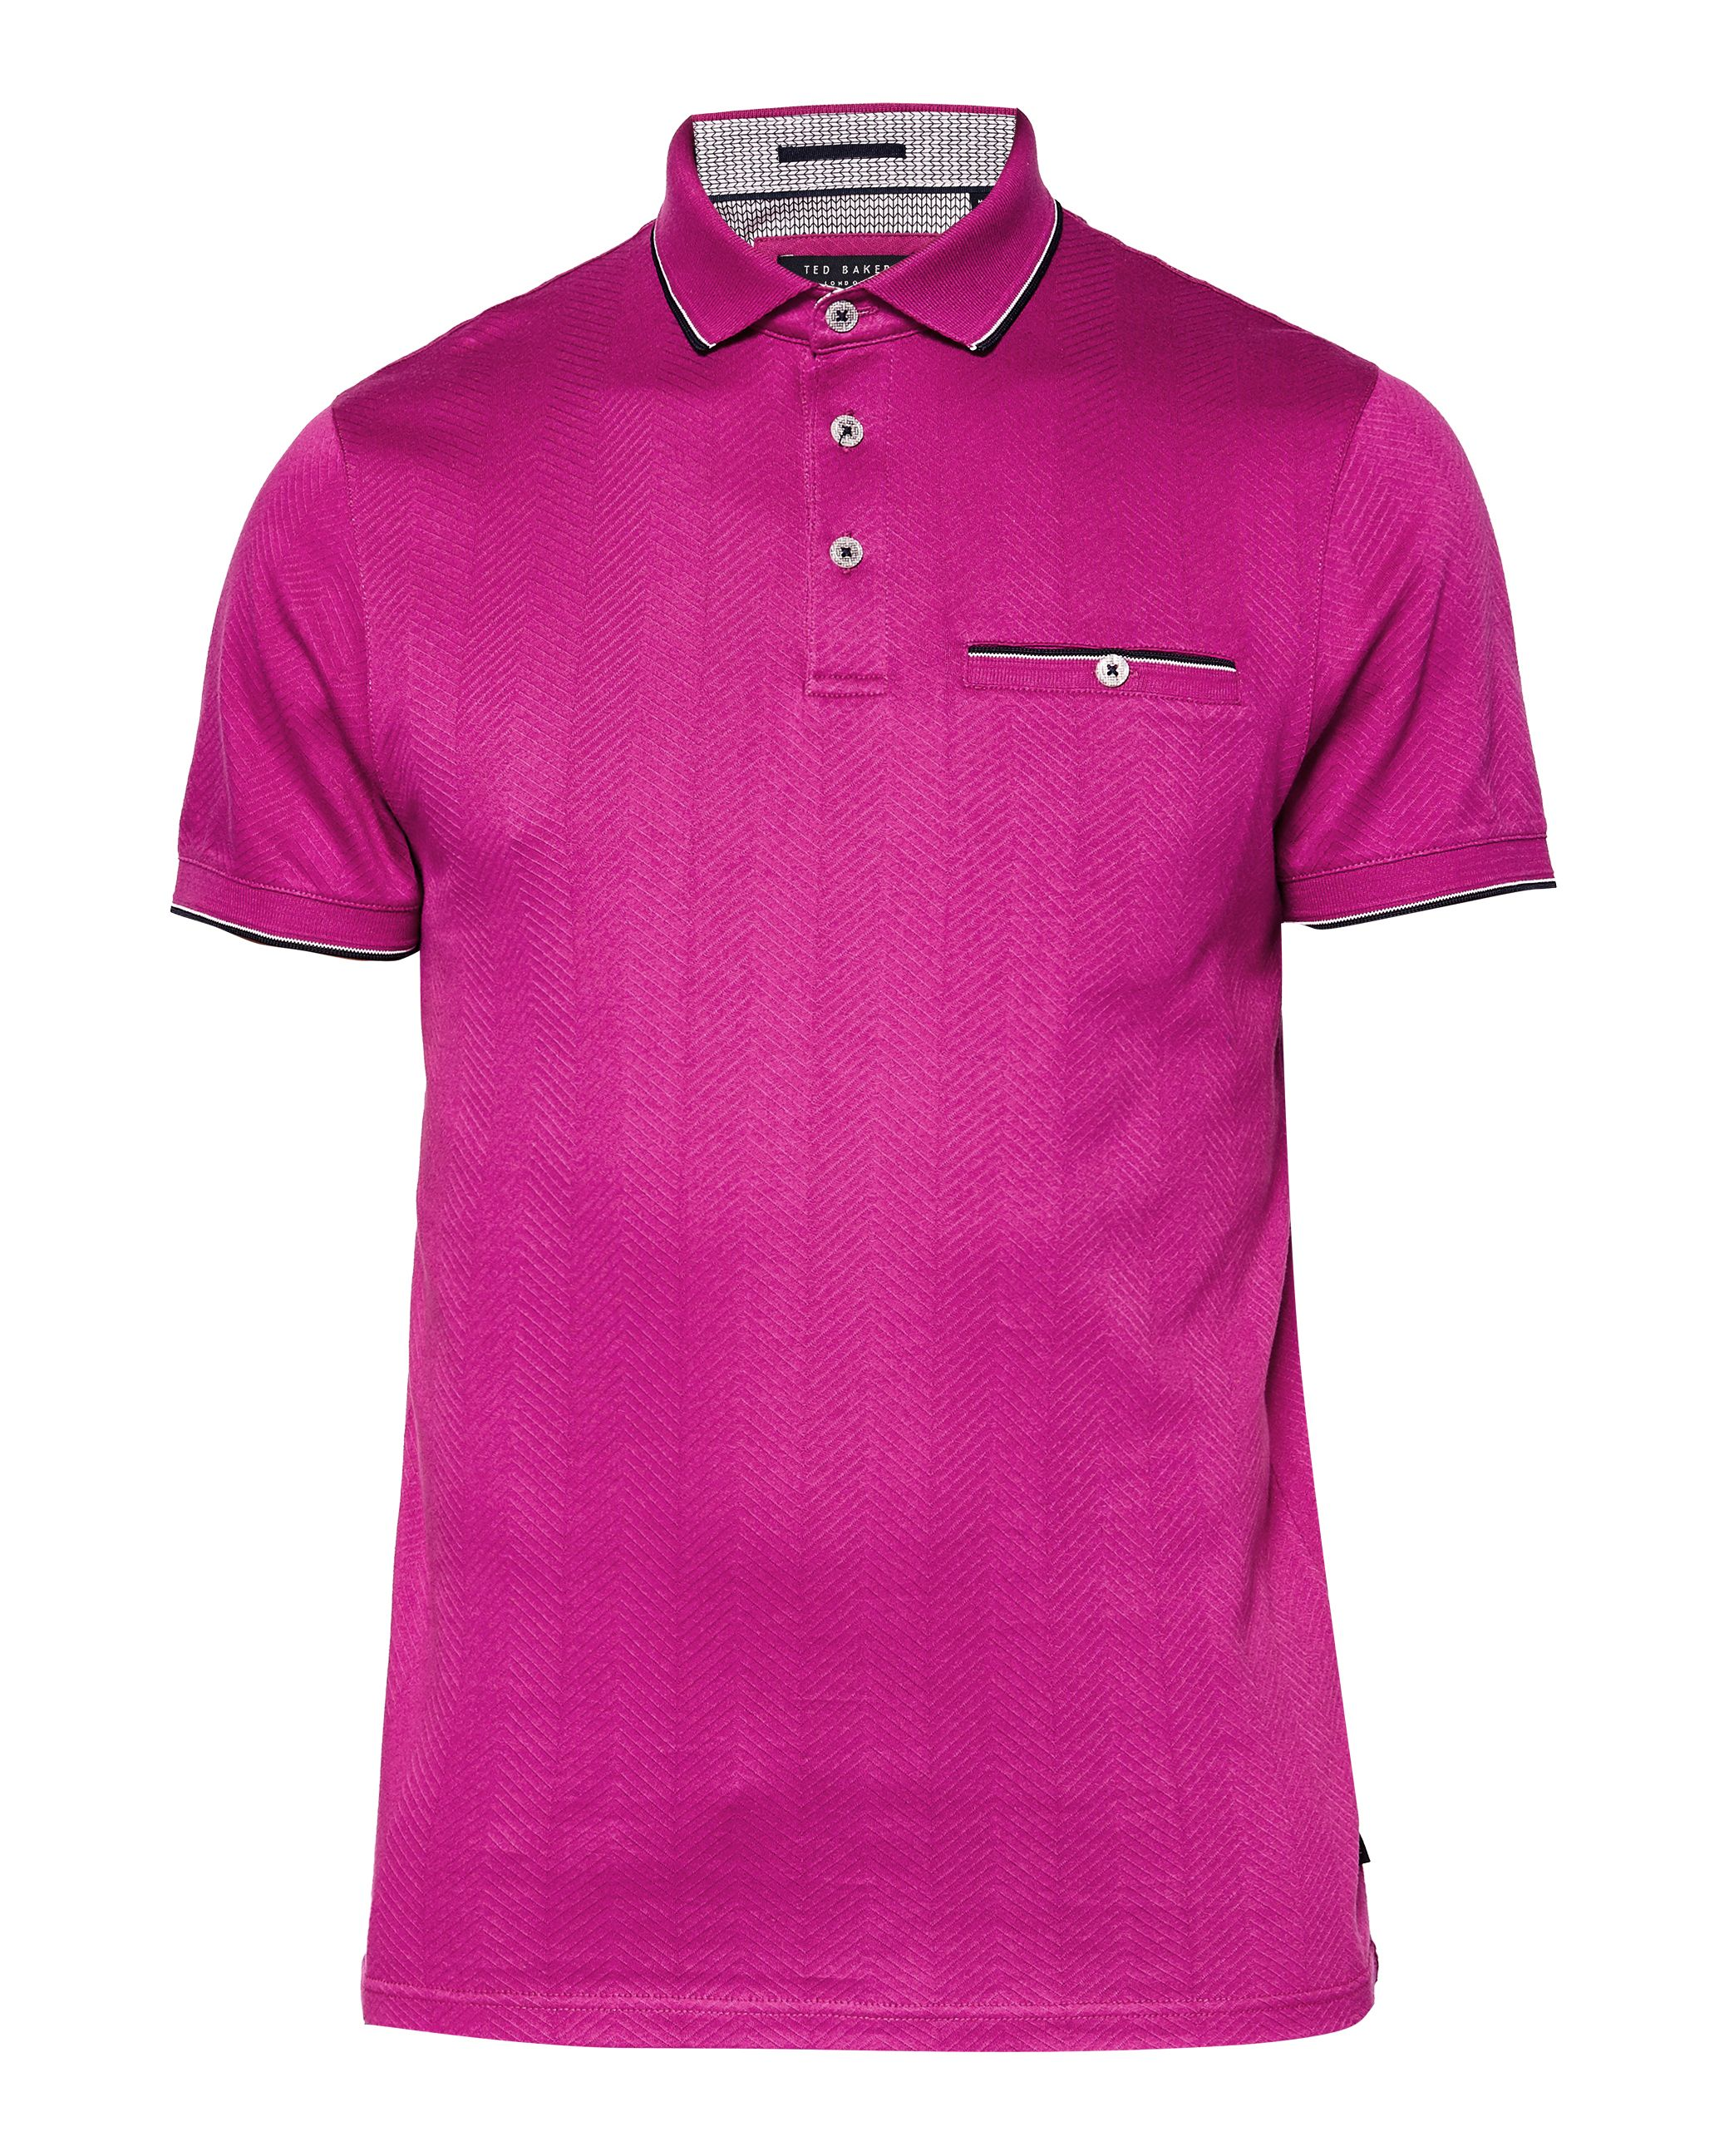 Men's Ted Baker Square Herringbone Jacquard Polo Shirt, Fuchsia